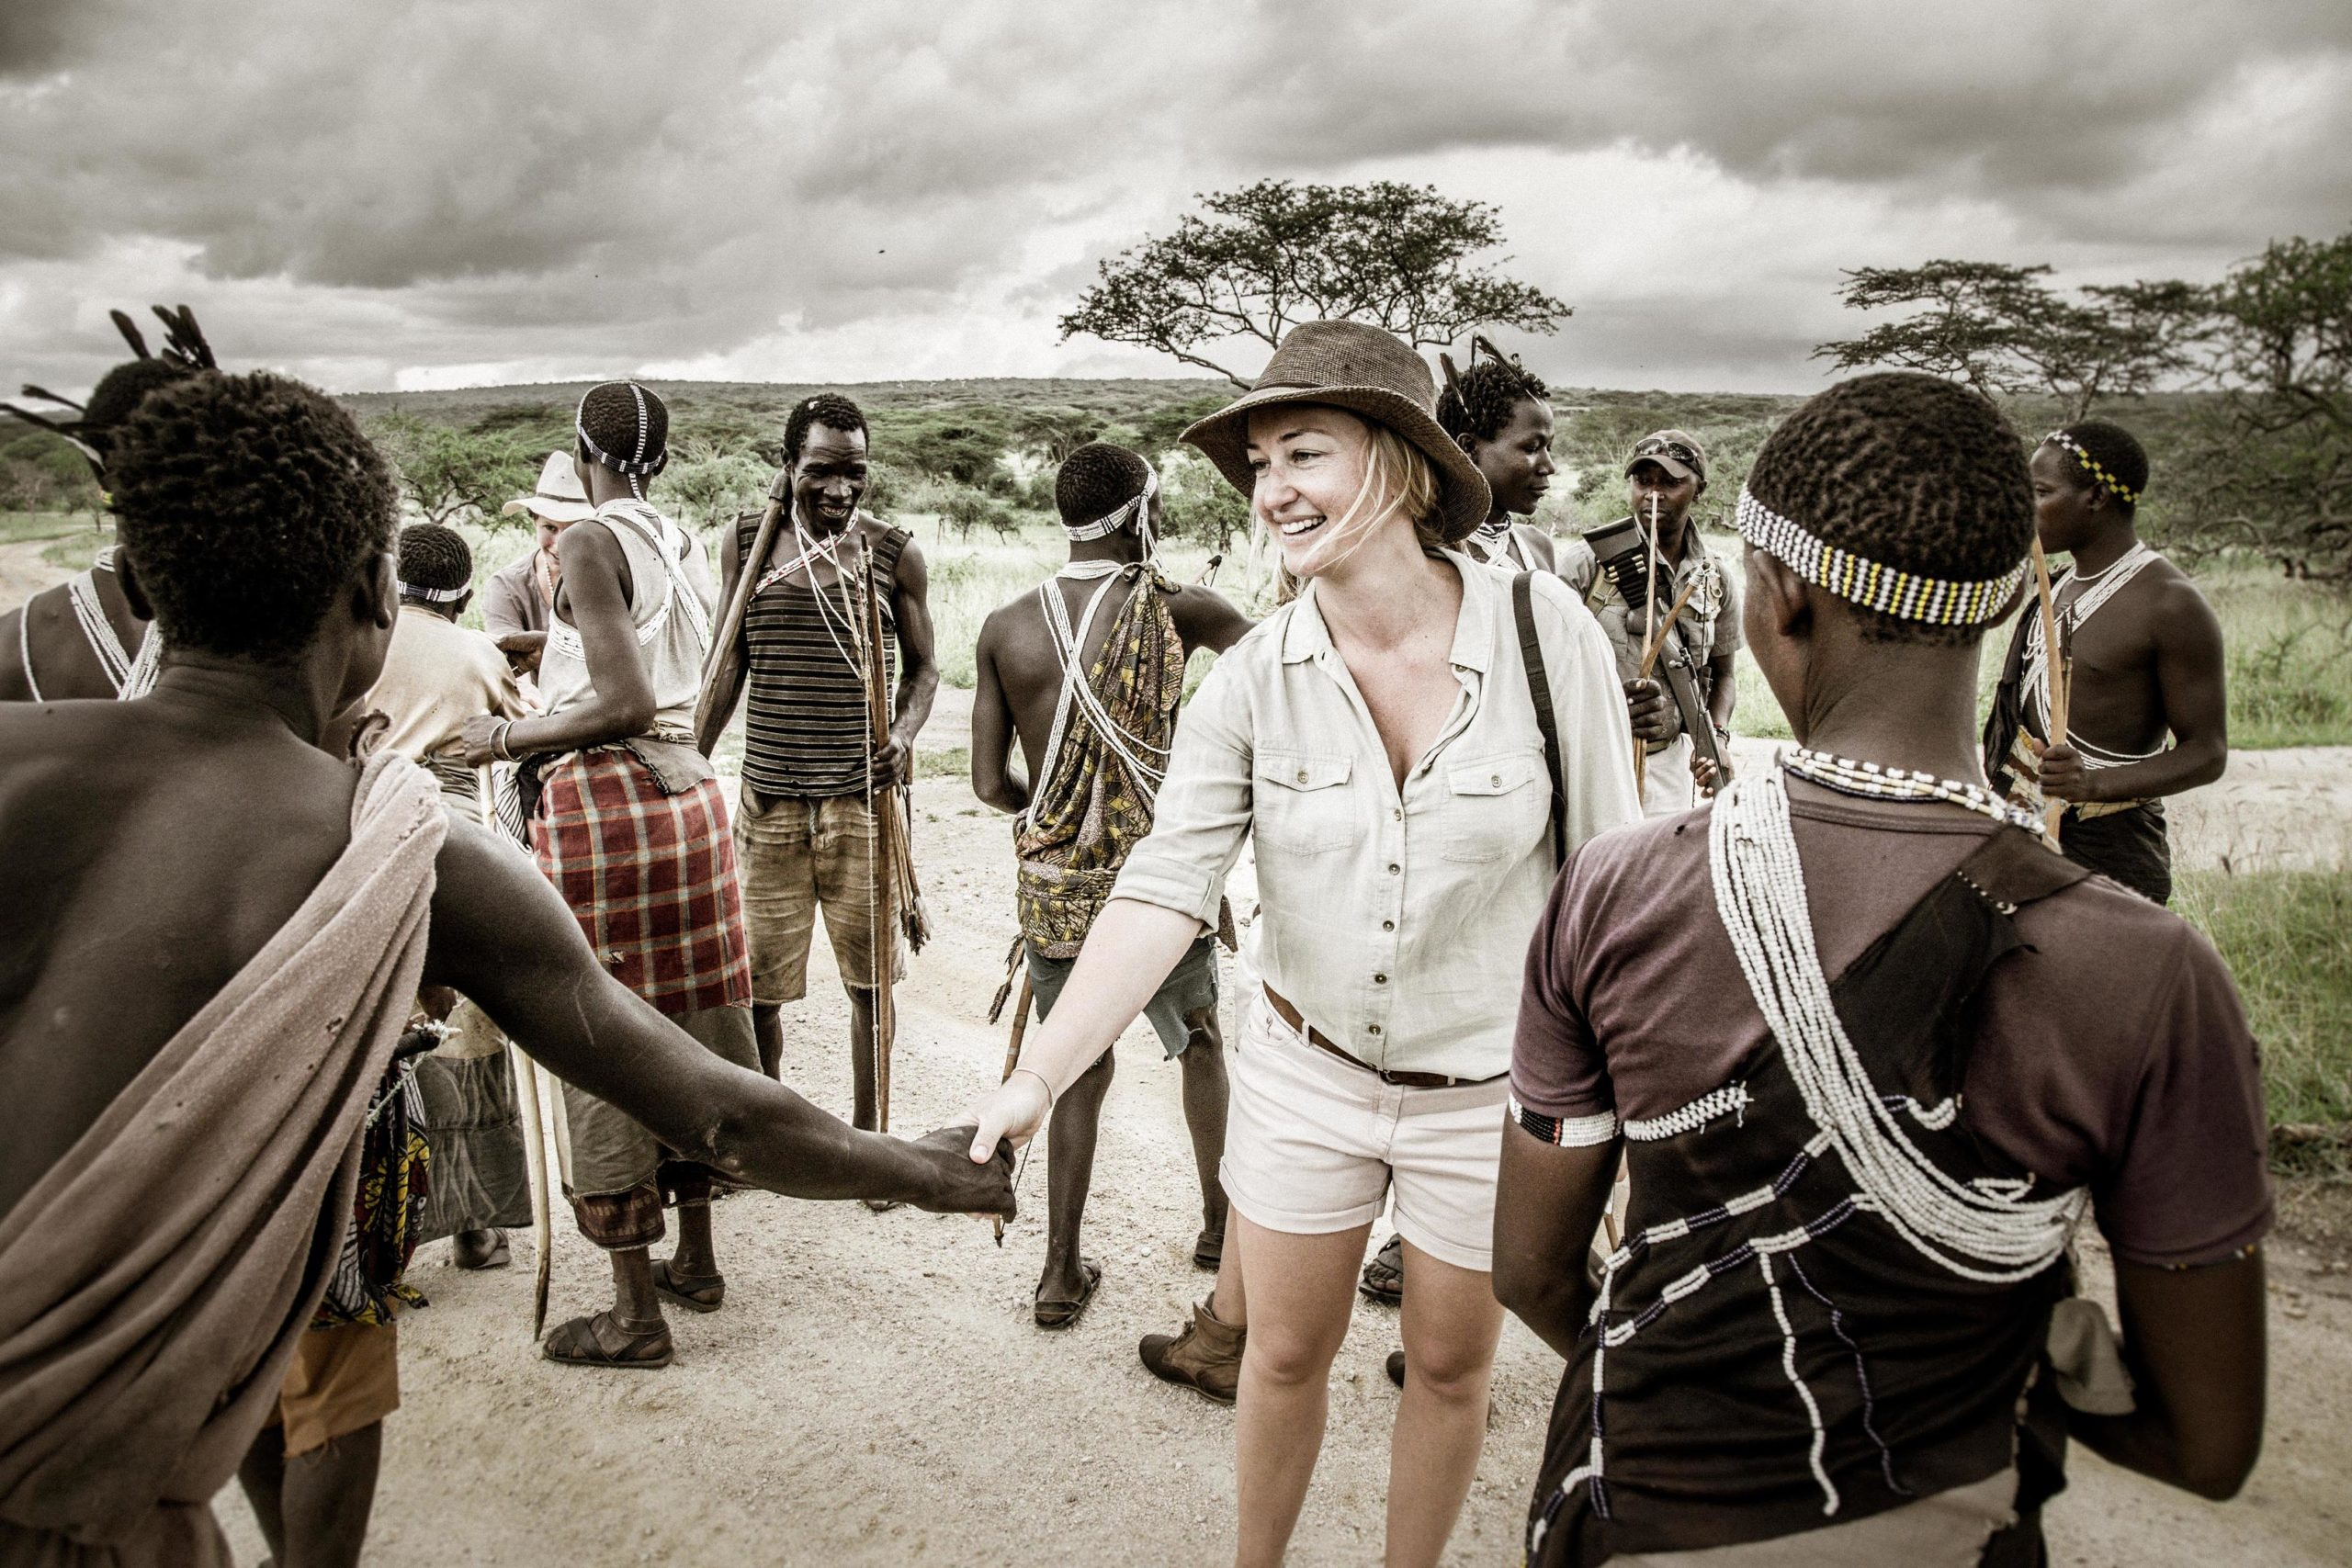 Client shaking hands with tribal people